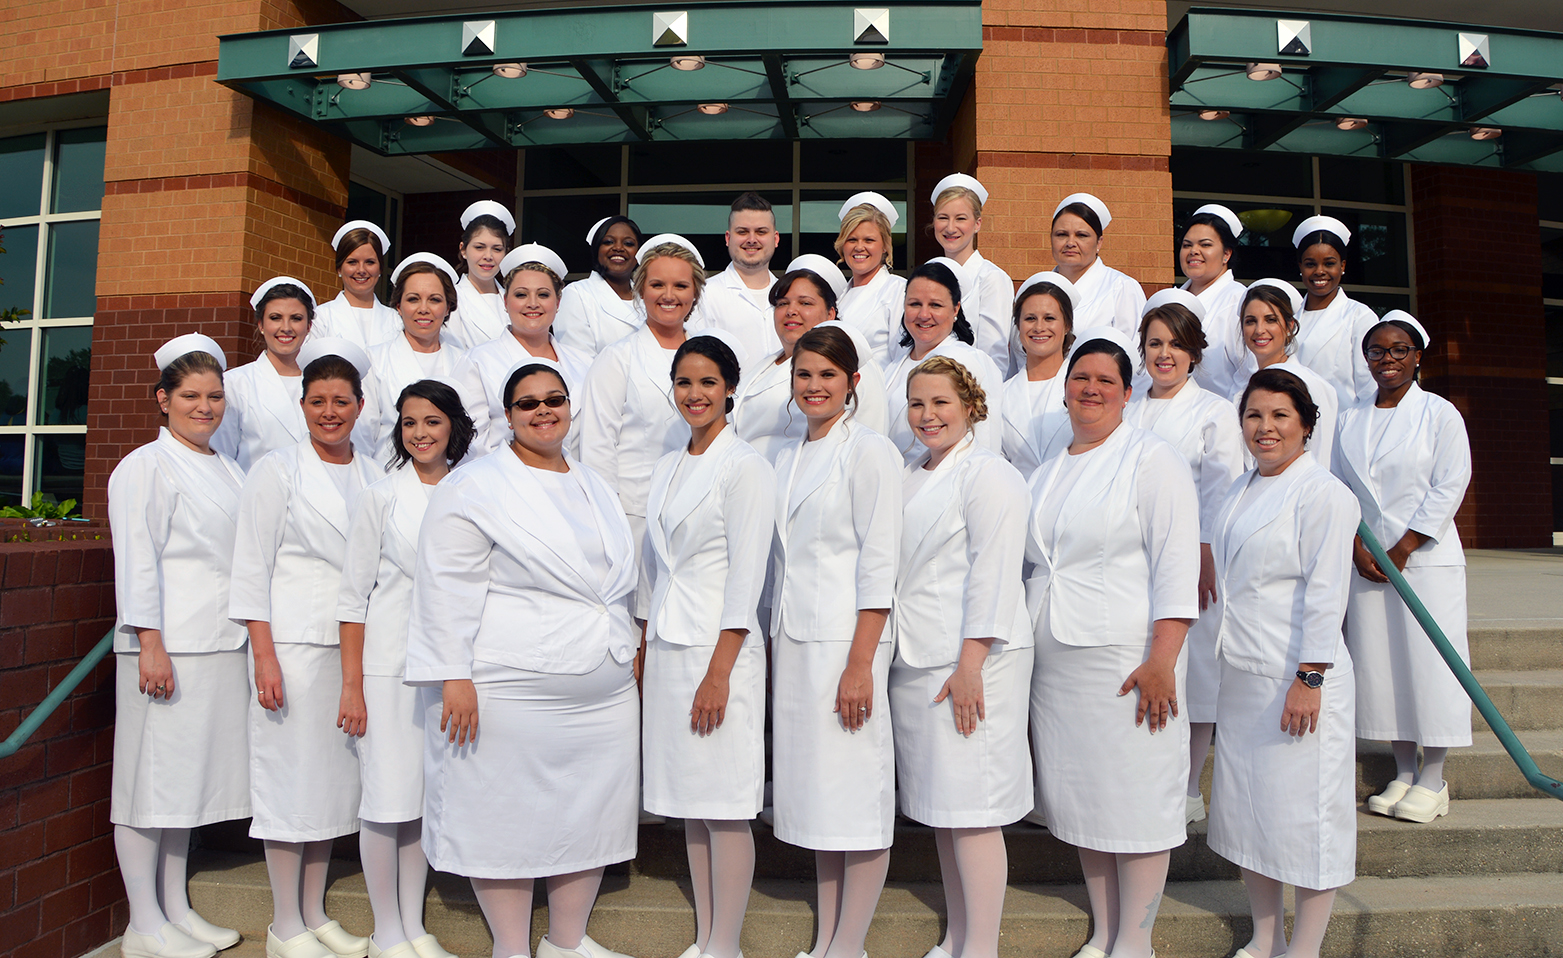 Class of 2017 Associate Degree of Nursing students on the steps of the Cole Auditorium